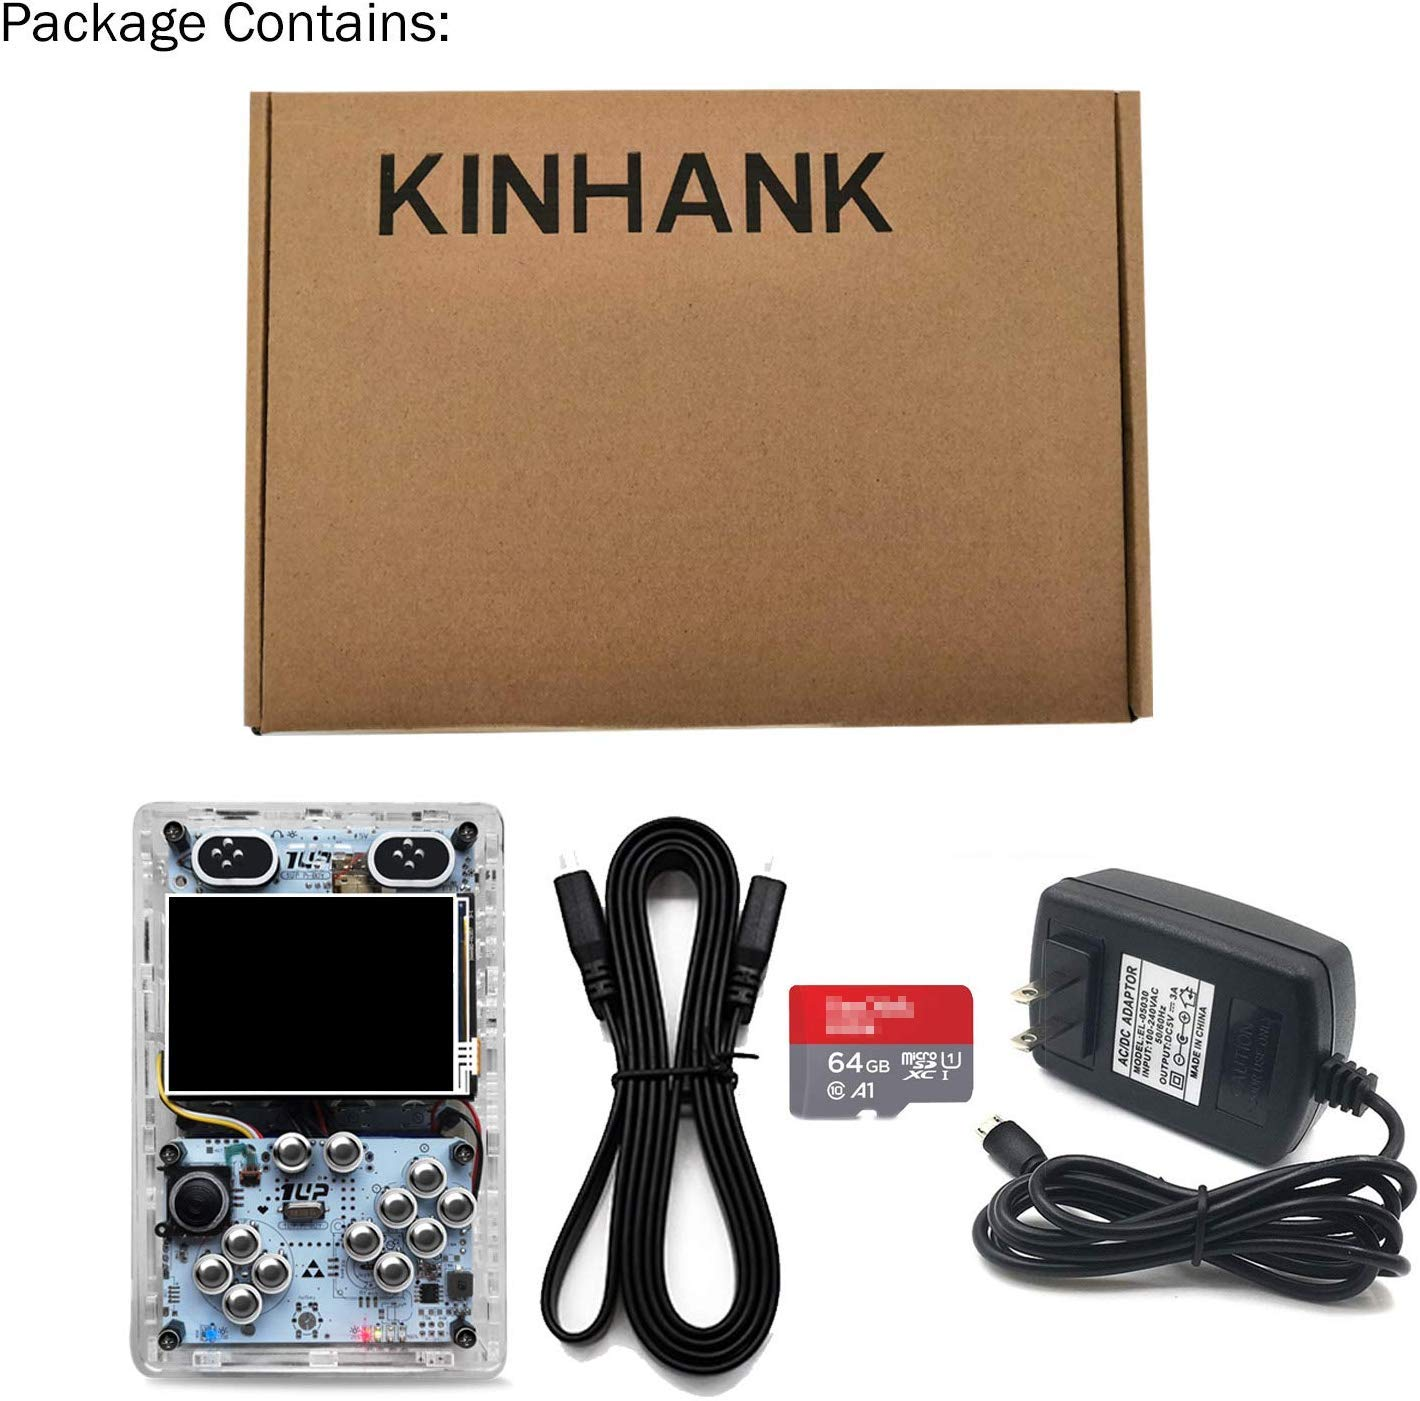 KINHANK 3.5 inch HDMI output Handheld game player, Raspberry Pi 3 B+ Game console With Retropie or Recalbox system, support over 50 emulators and 50,000 games by KINHANK (Image #7)